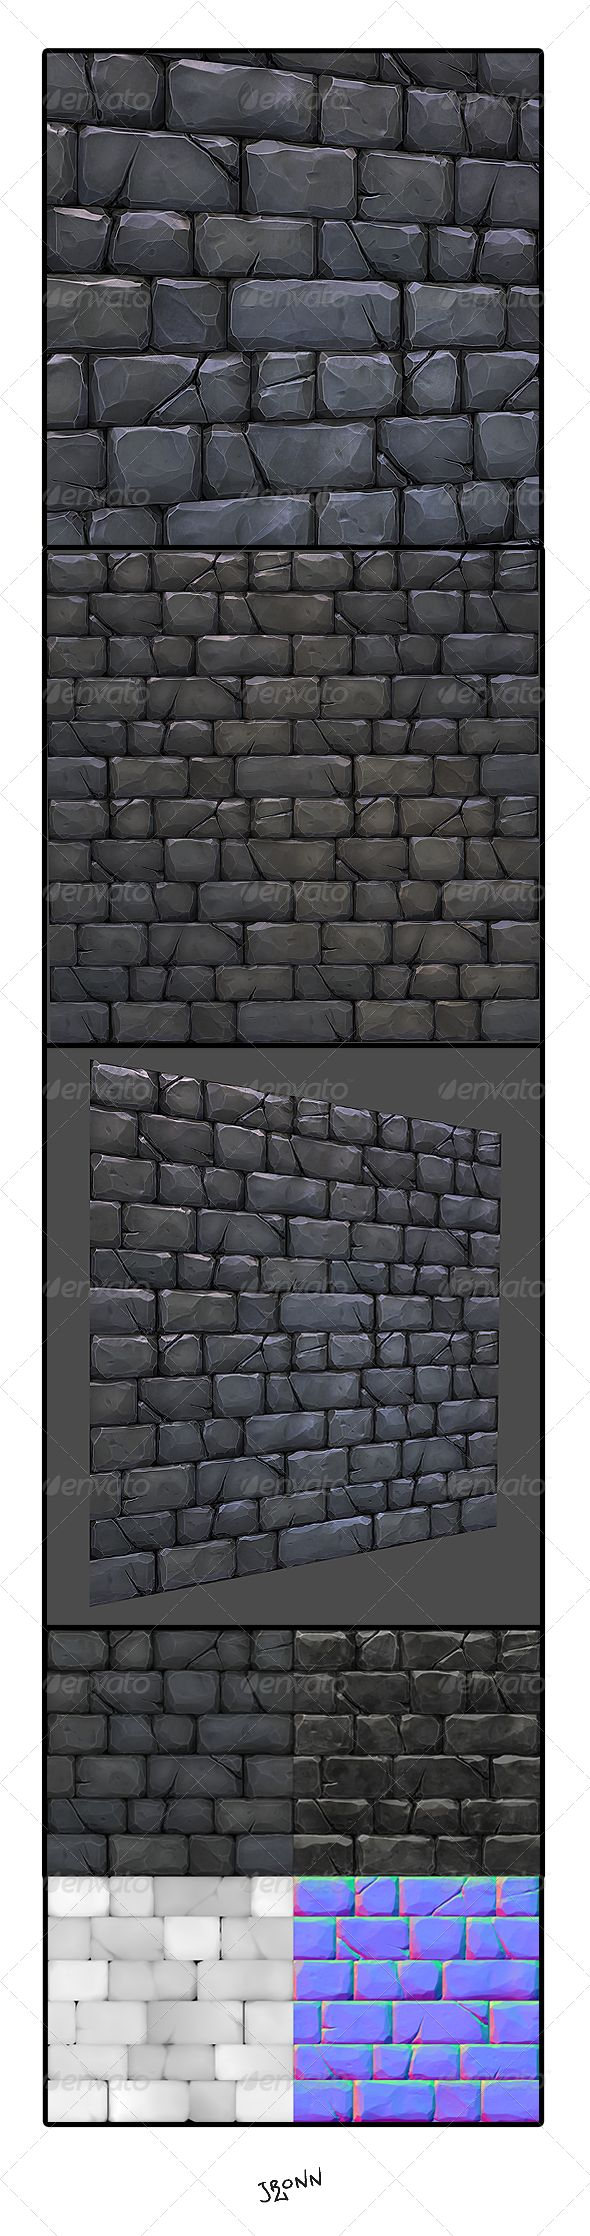 Example of stone wall